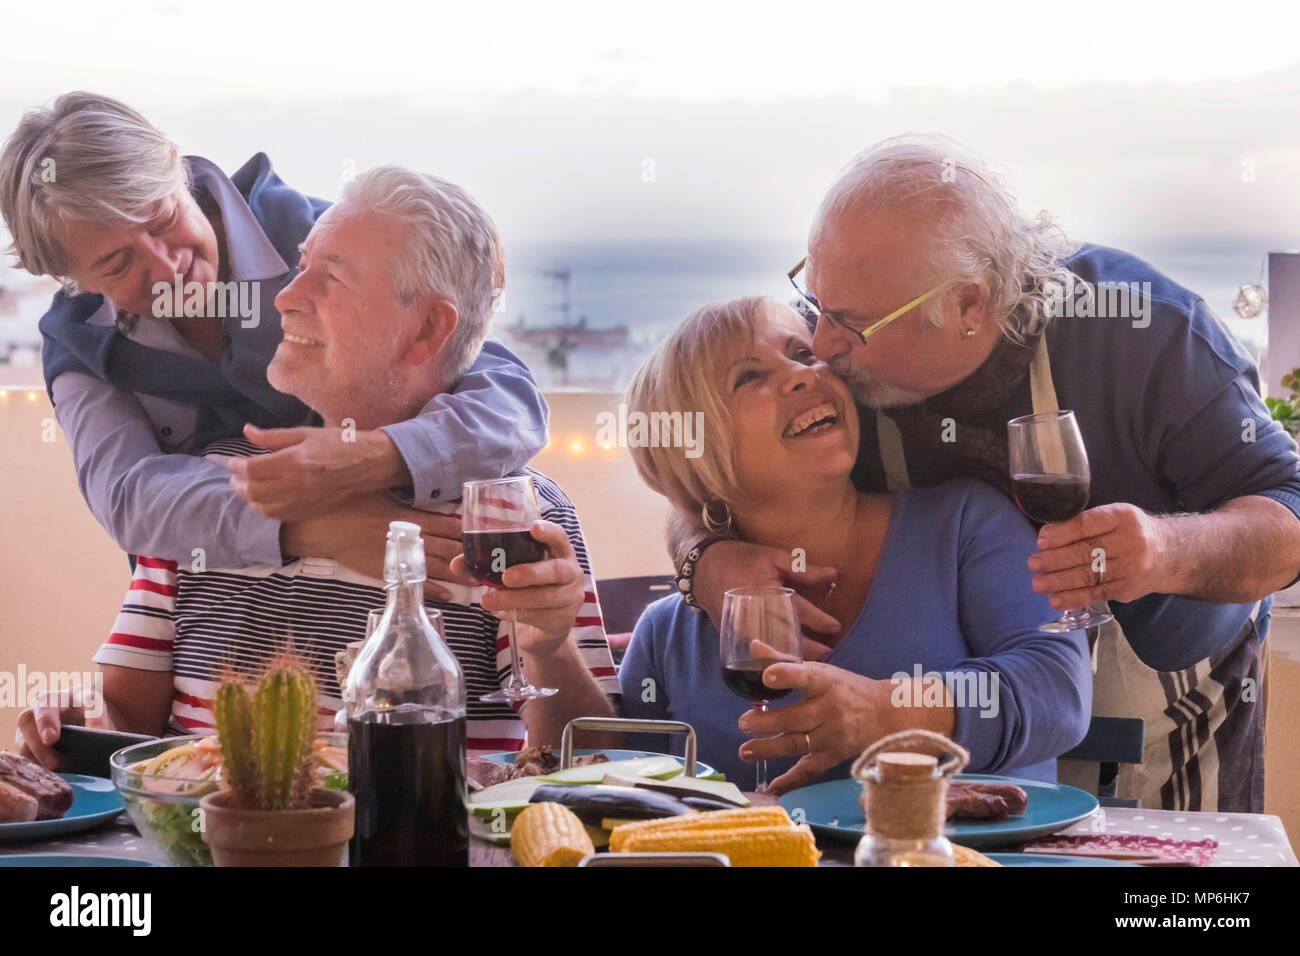 two mature couple stay together with love smiles and kisses during a dinner outdoor on the terrace rooftop with ocean and roofs view. joy and having f - Stock Image